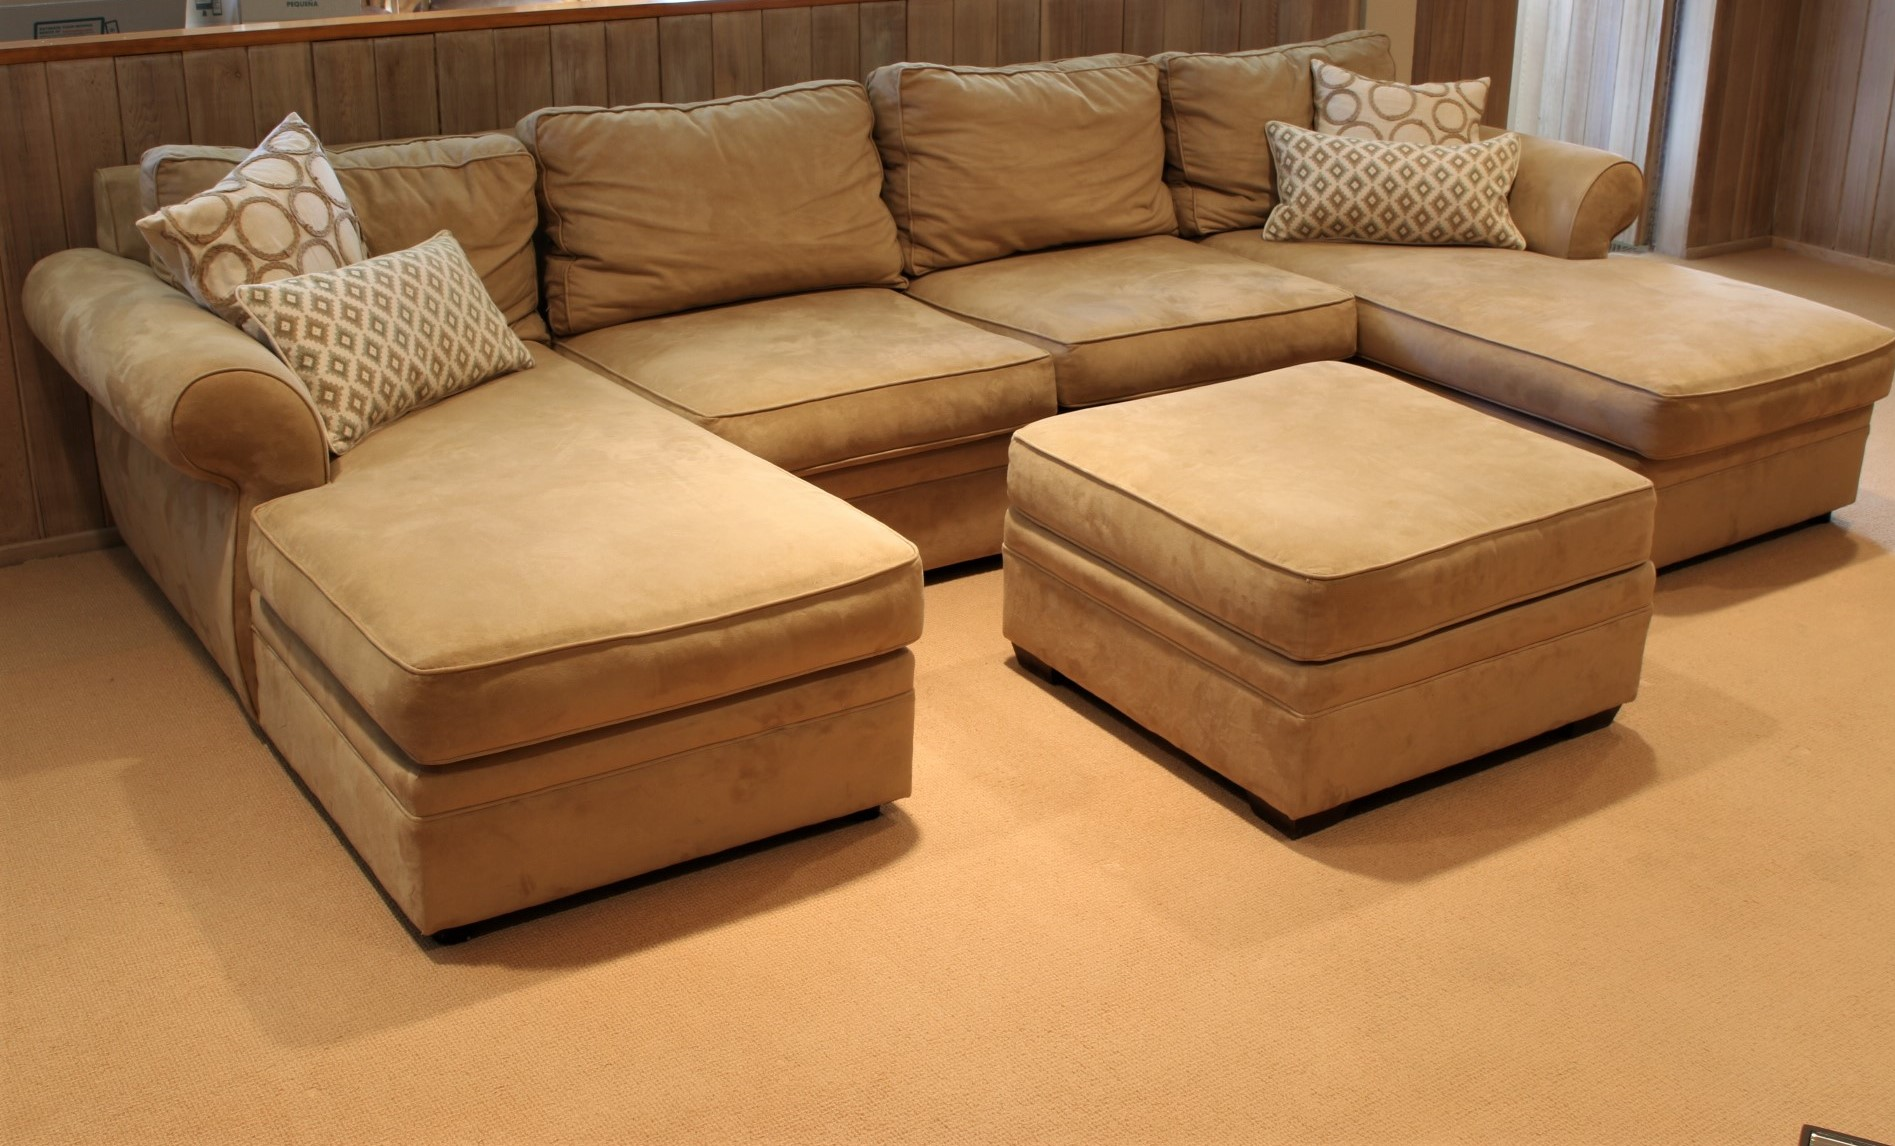 Pottery Barn Sutter Street Double Chaise Sectional Plus Ottoman